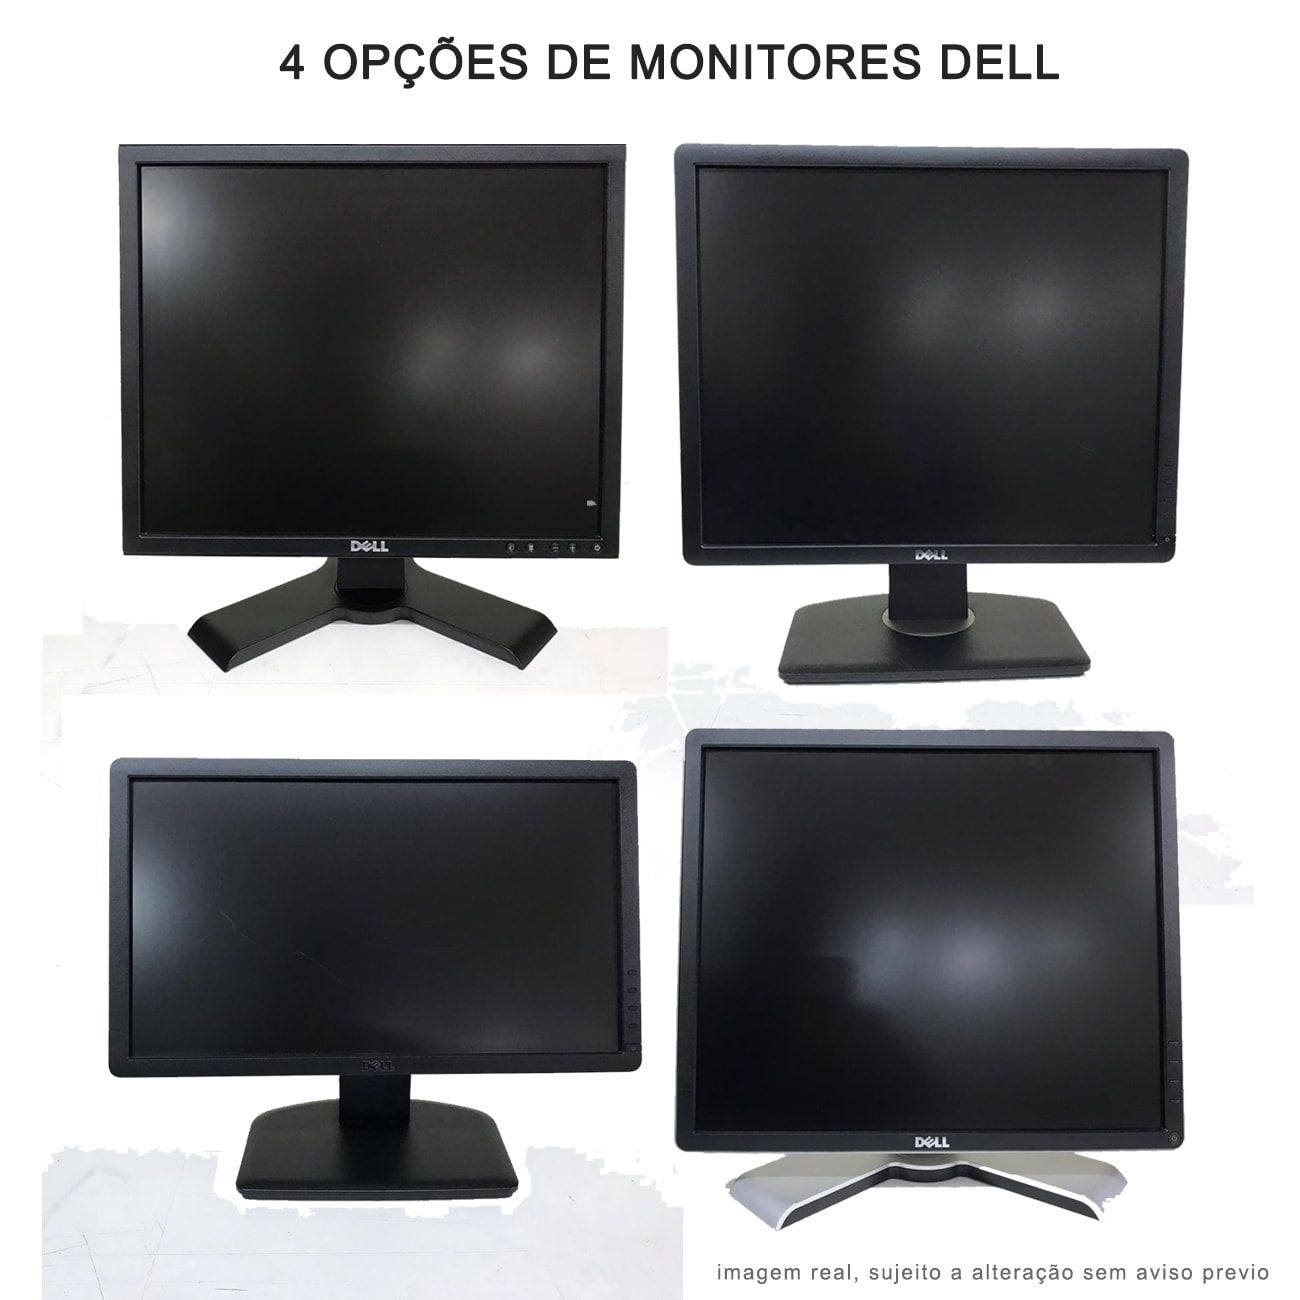 Computador Completo Dell 7020 Core i3 4220 4GB HD 500GB Monitor Wifi Win10